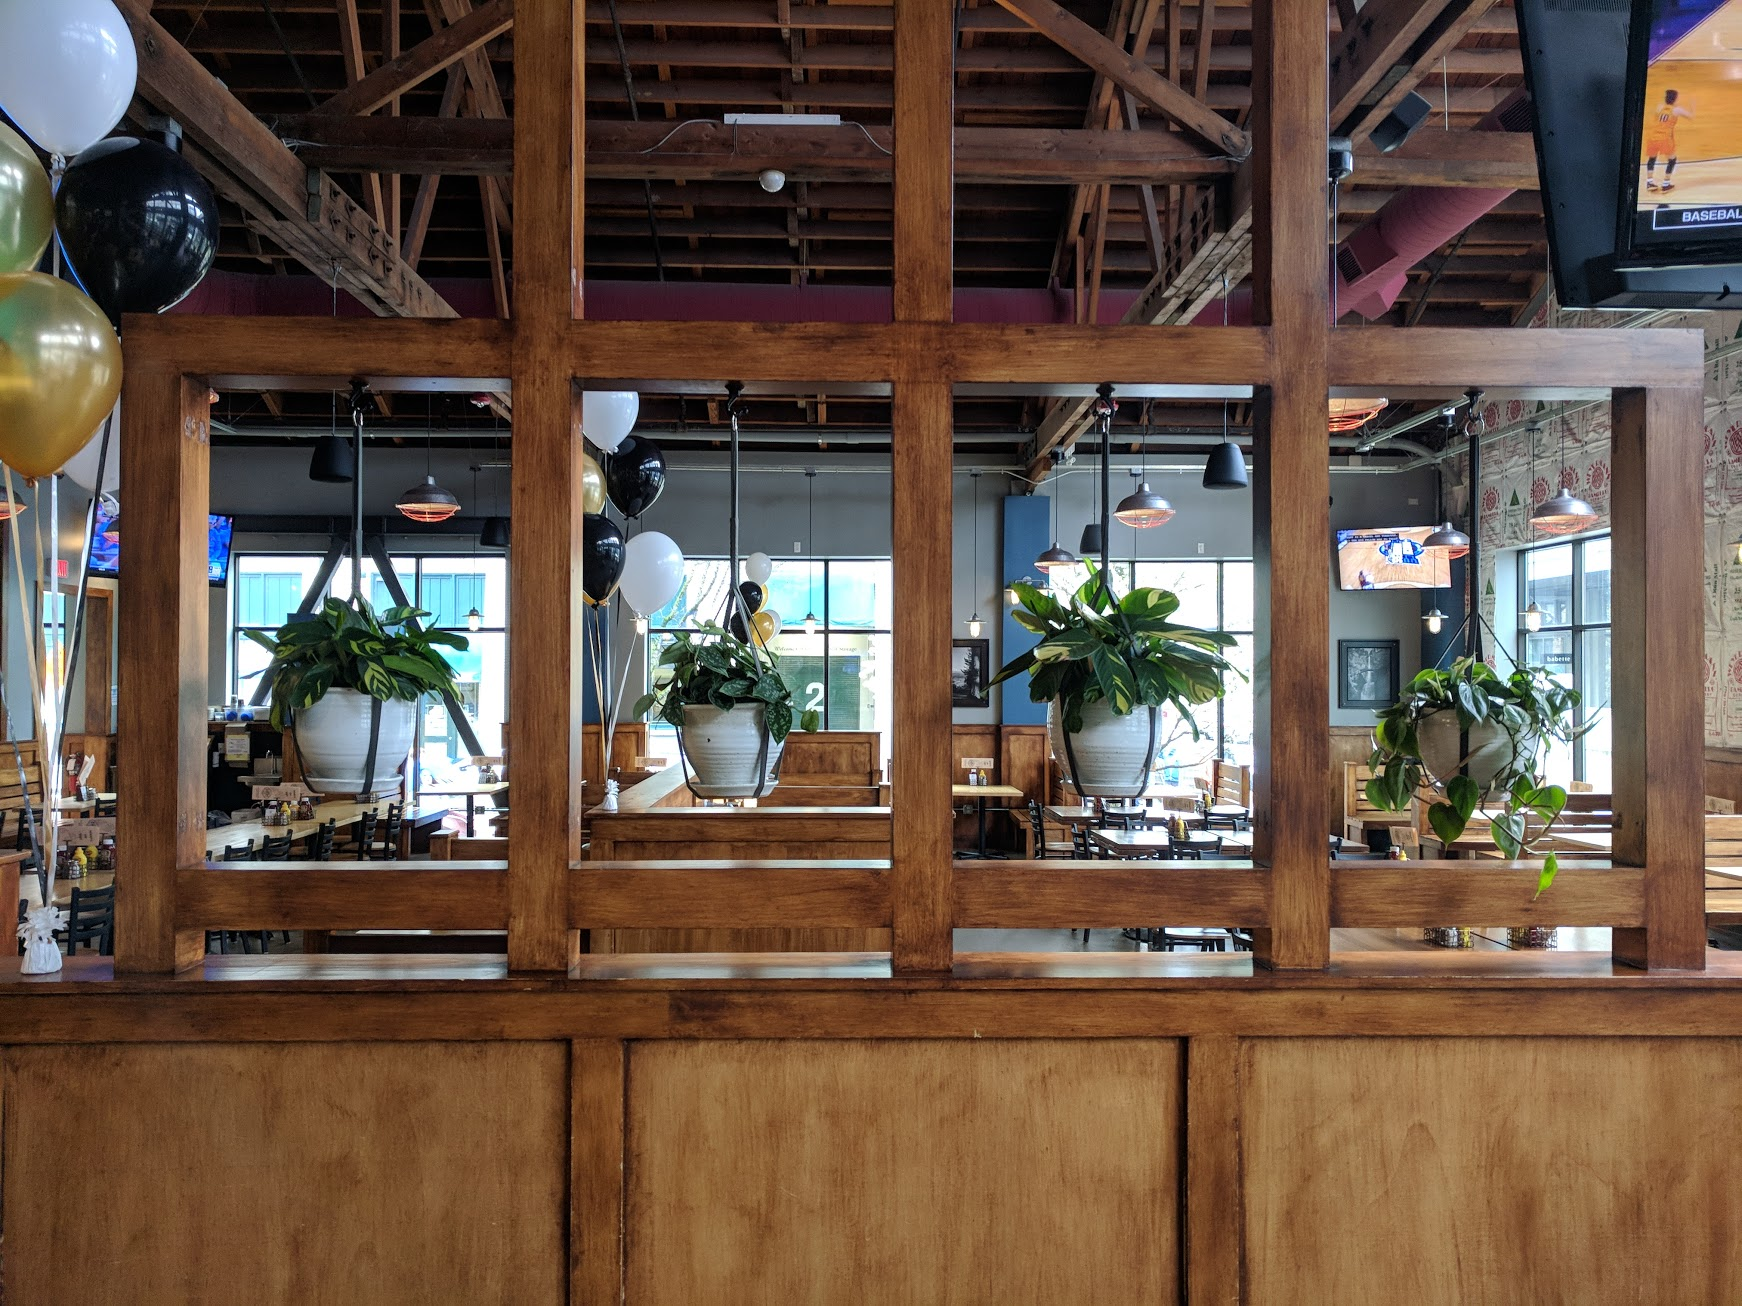 Looking from the bar area to the restaurant side at Von Ebert Brewing. (photo by Nick Rivers)